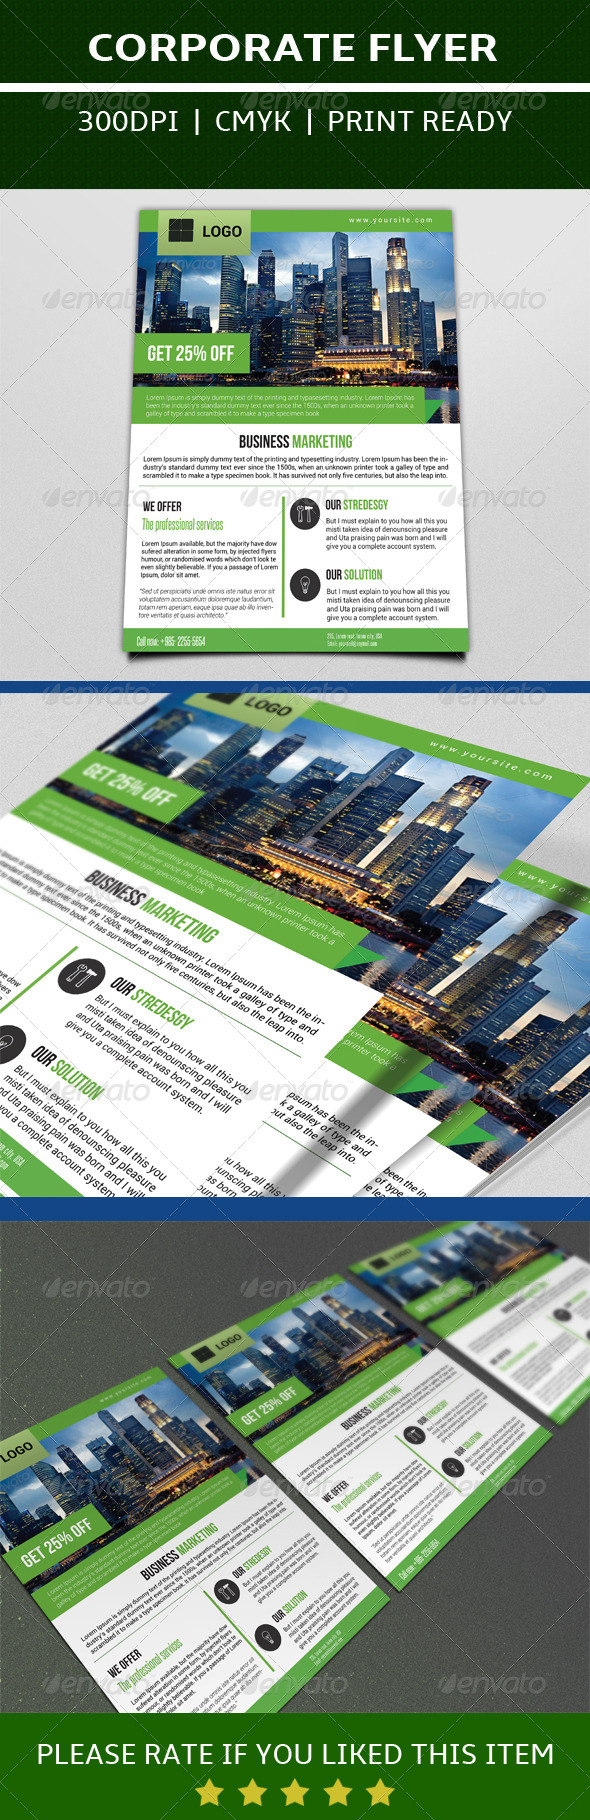 GraphicRiver Business Marketing Flyer 7549664